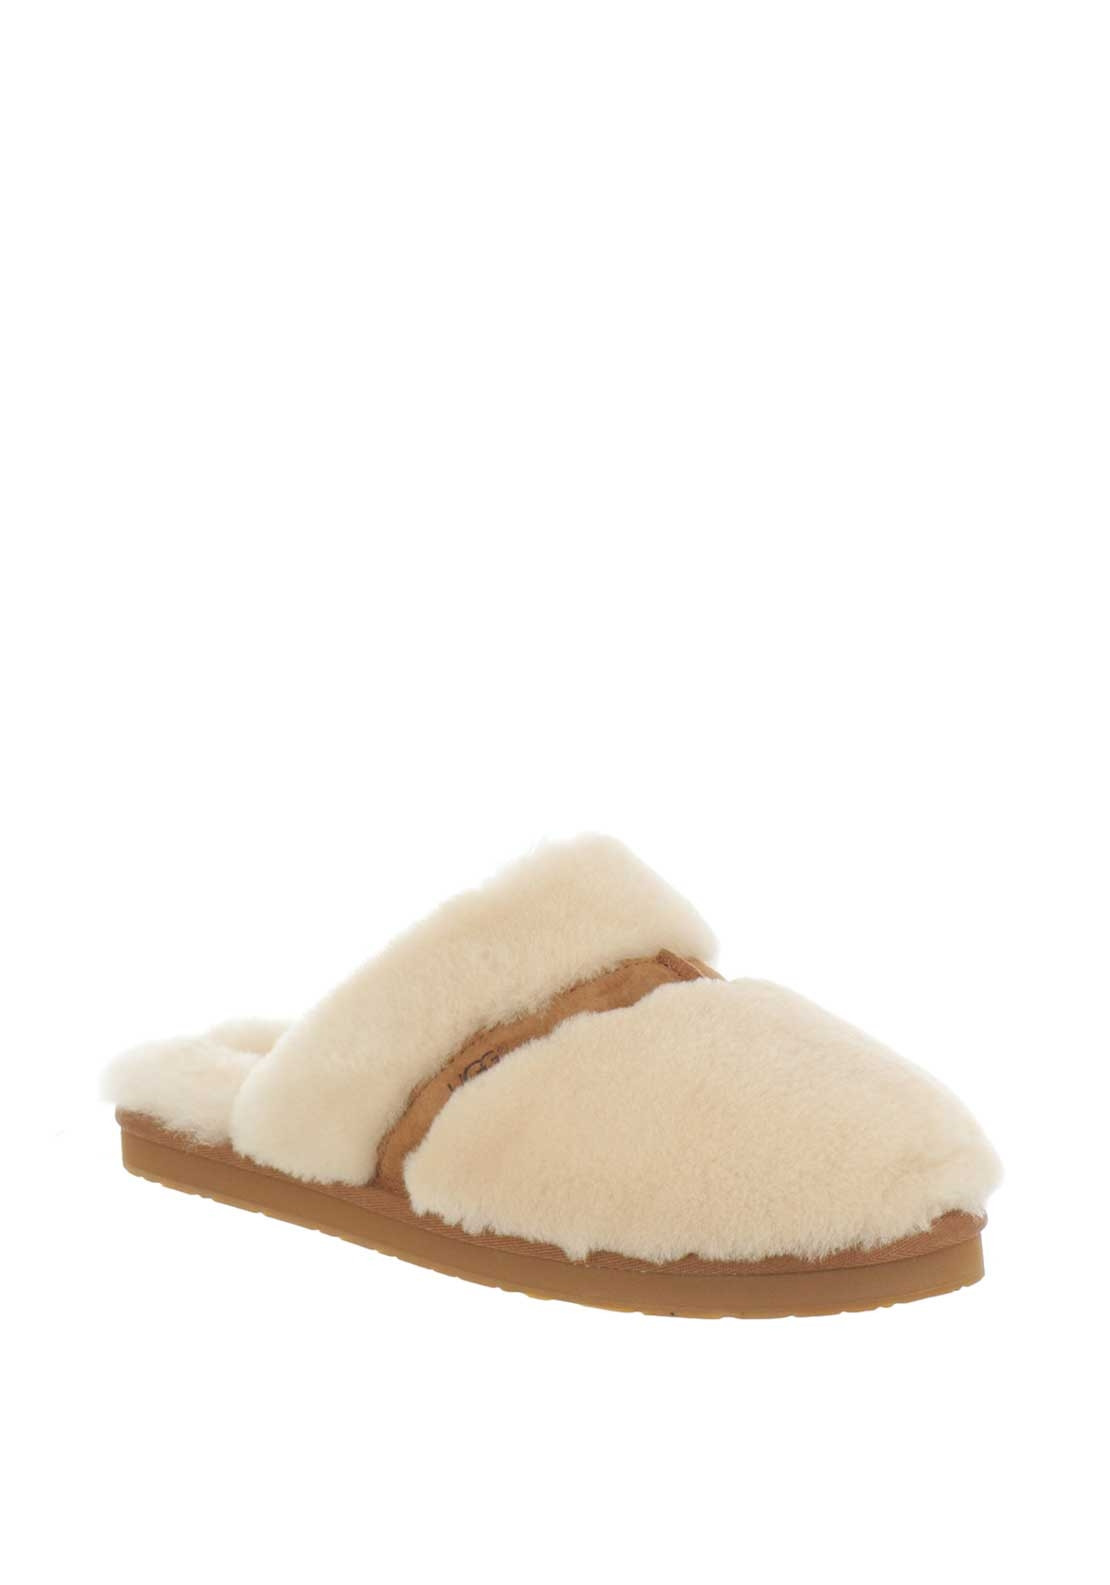 UGG Australia Womens Dalla Sheepskin Slippers, Cream